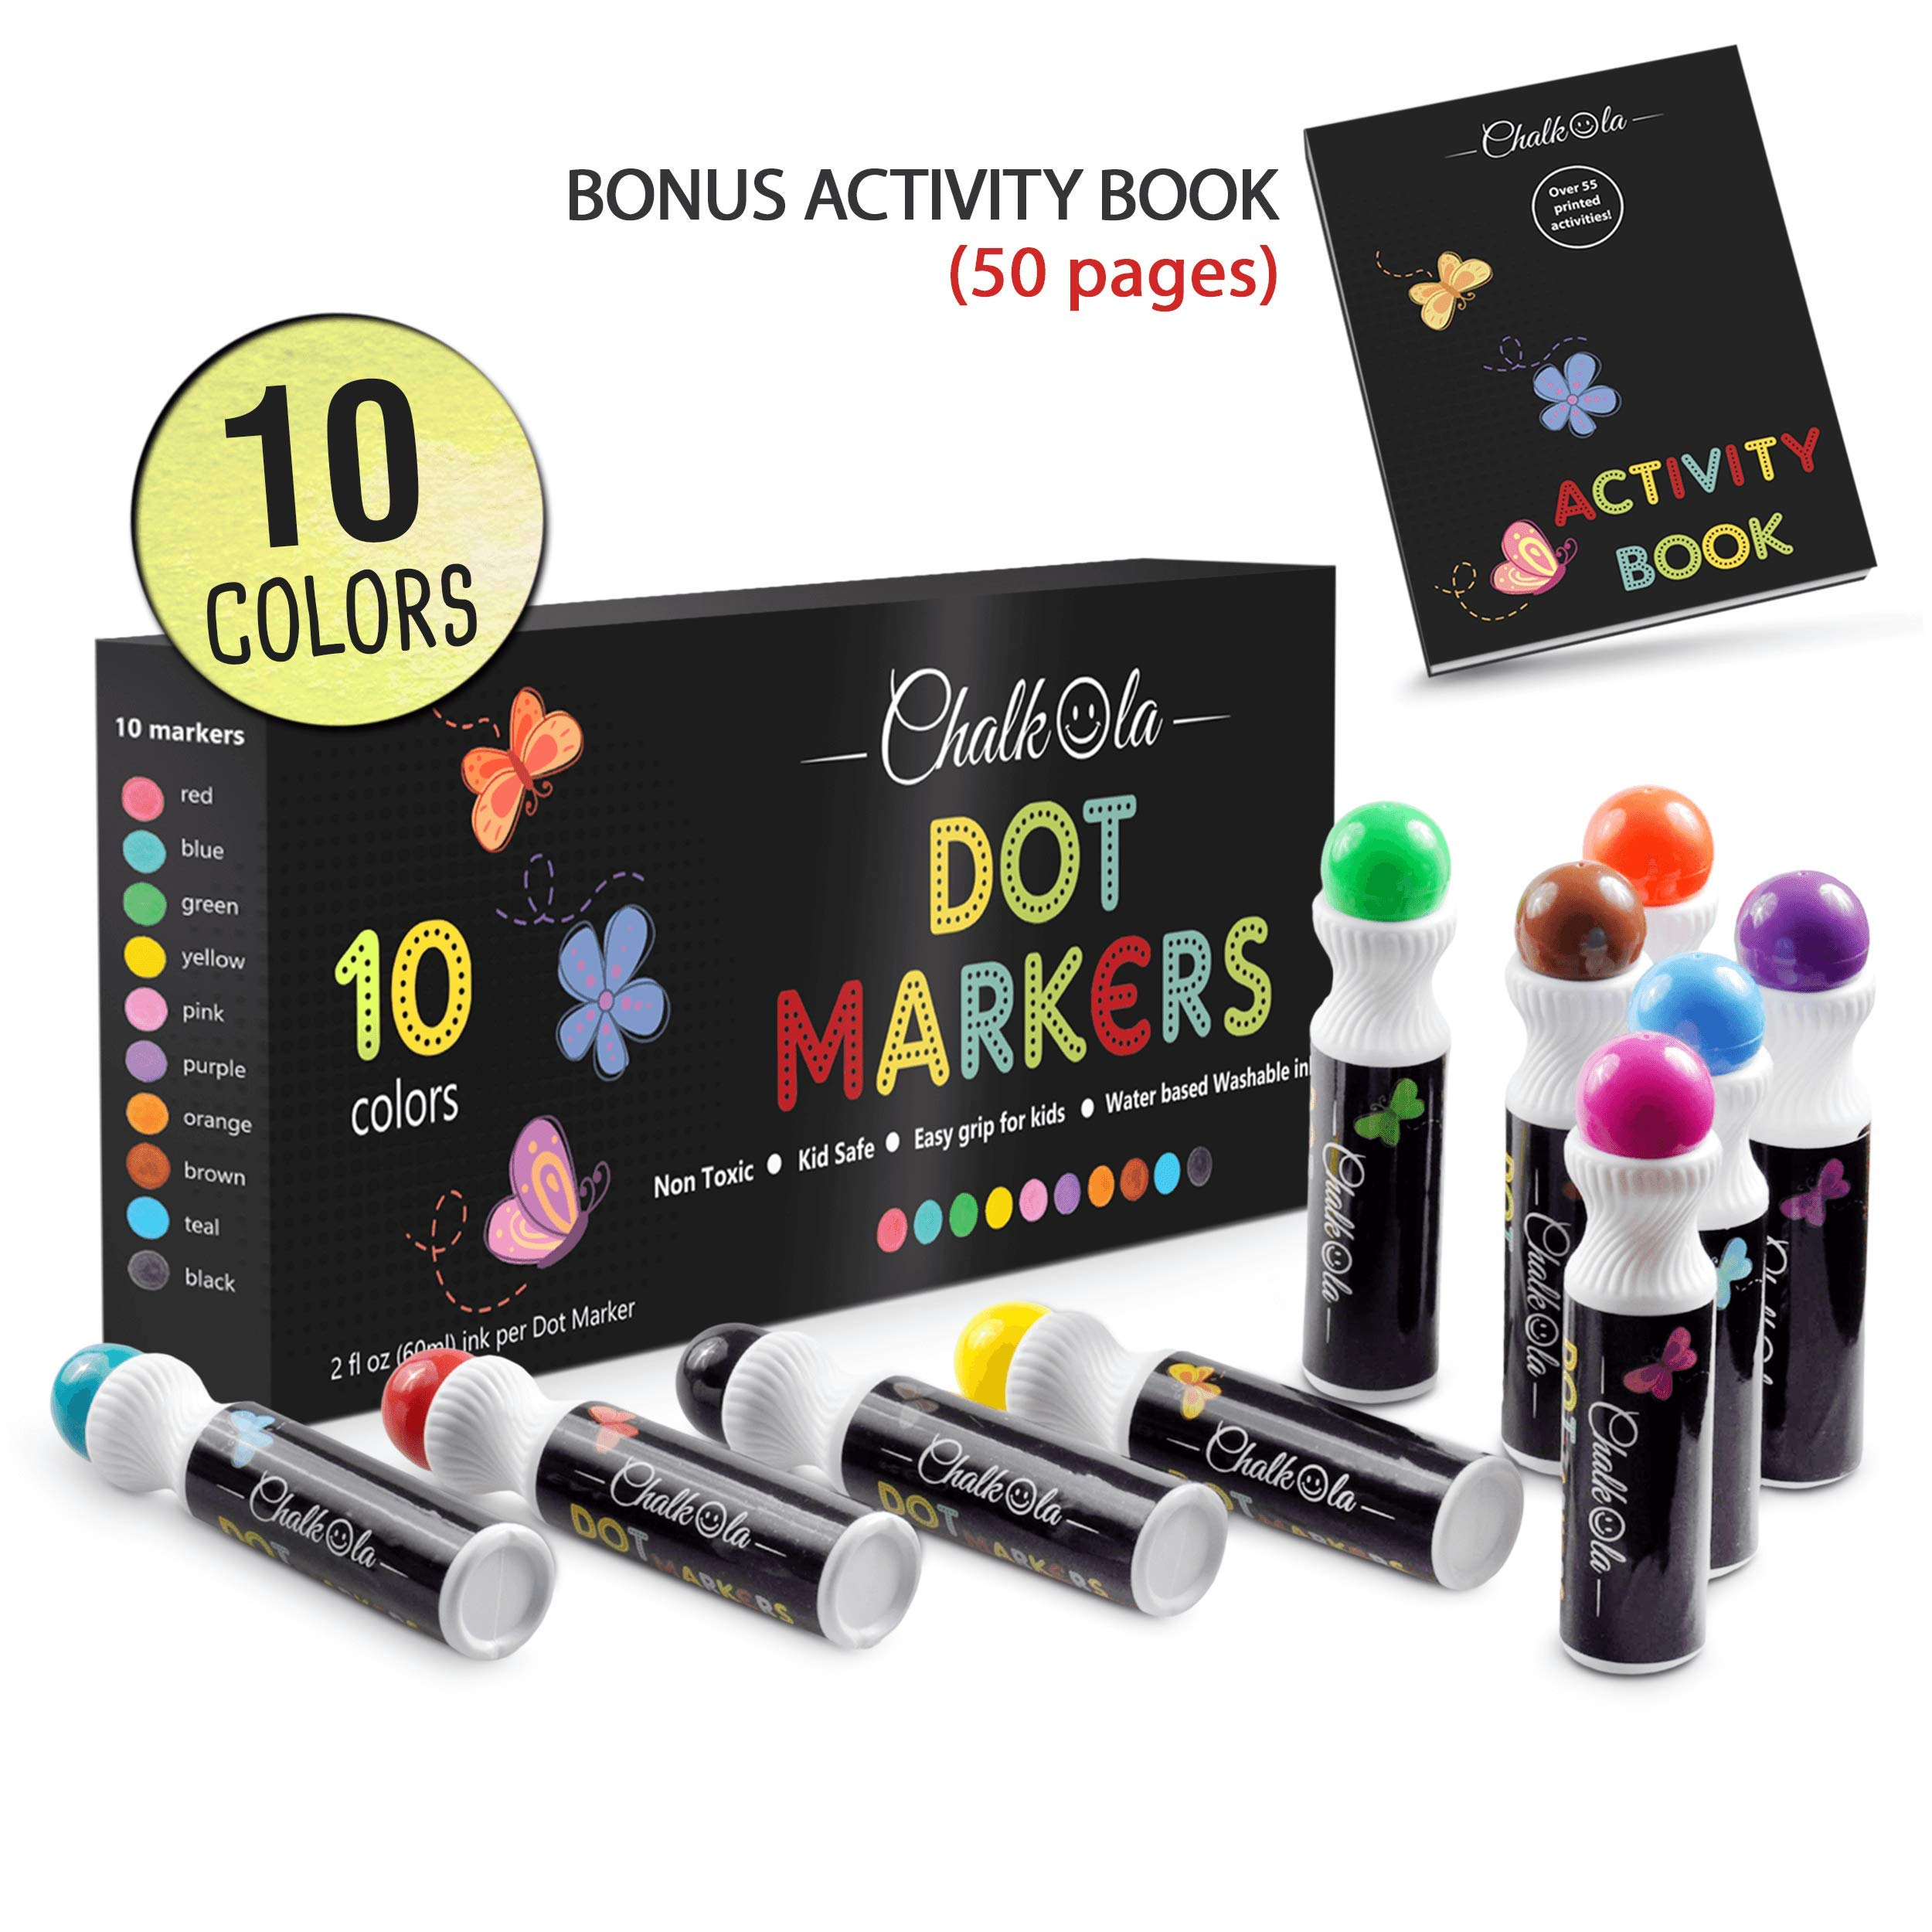 Washable Dot Markers for Kids with Free Activity Book | Large 10 Colors Set | Water-Based Non Toxic Paint Daubers | Dab Marker Kit for Toddlers & Preschoolers | Fun Art Supplies by Chalkola